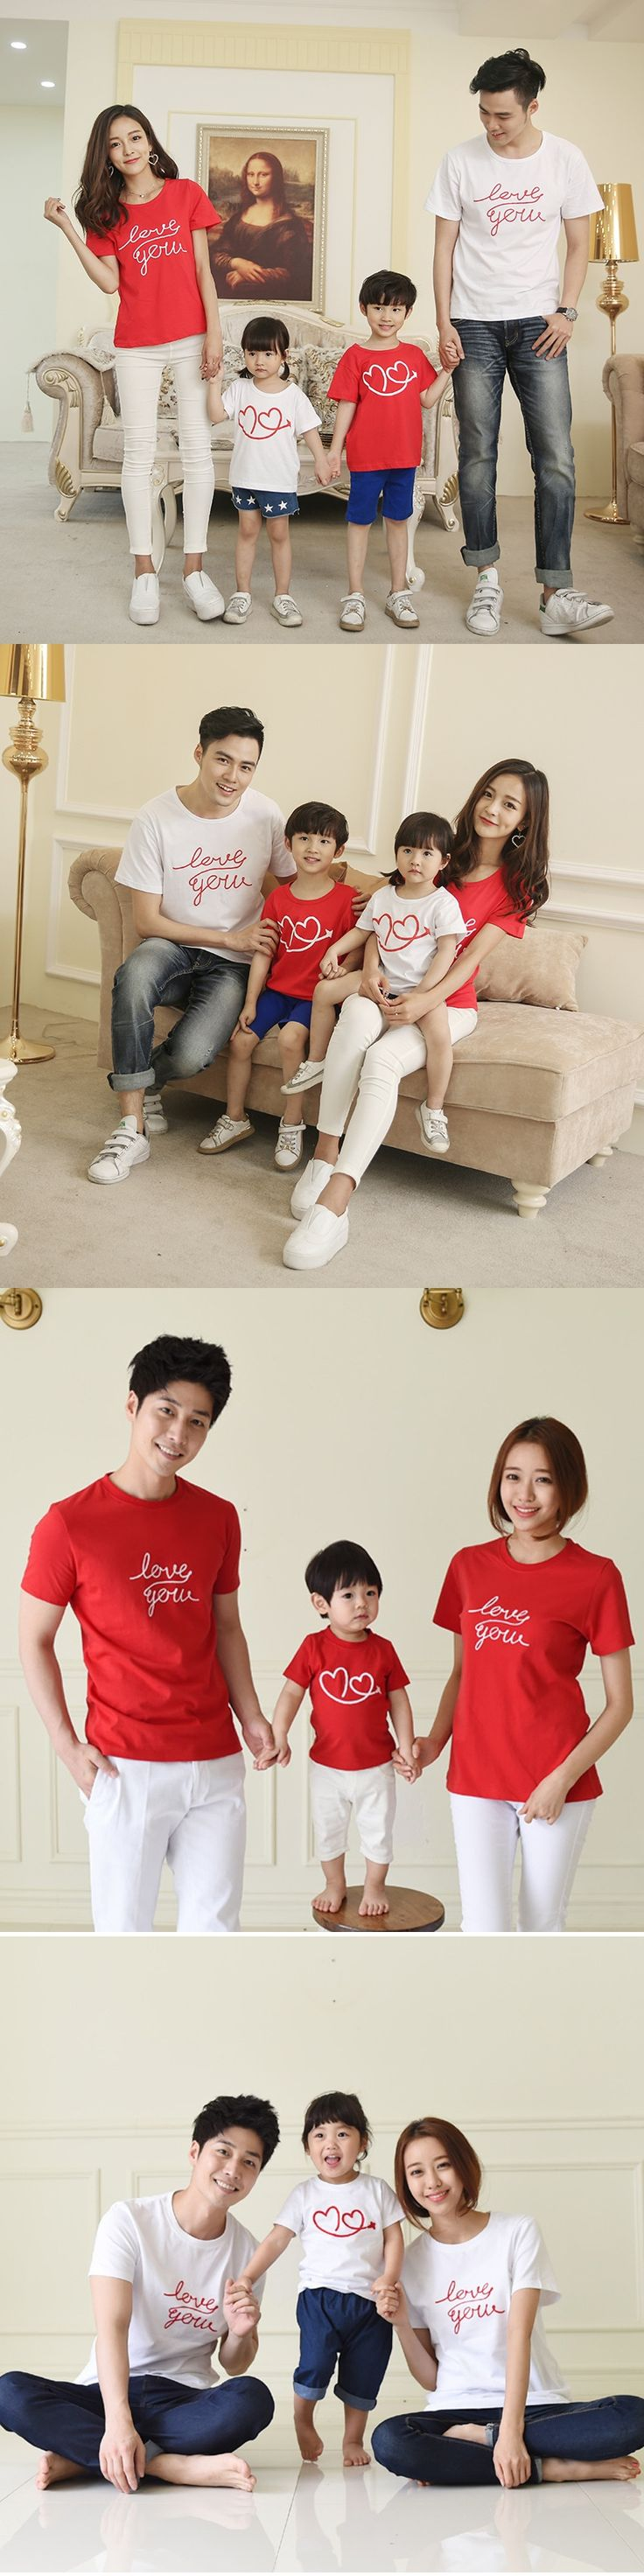 Matching Family Clothes Plus Size Love You Short-sleeve T-shirt for Family Father Mother Kids Shirts Clothes Couple T-shirt Gift